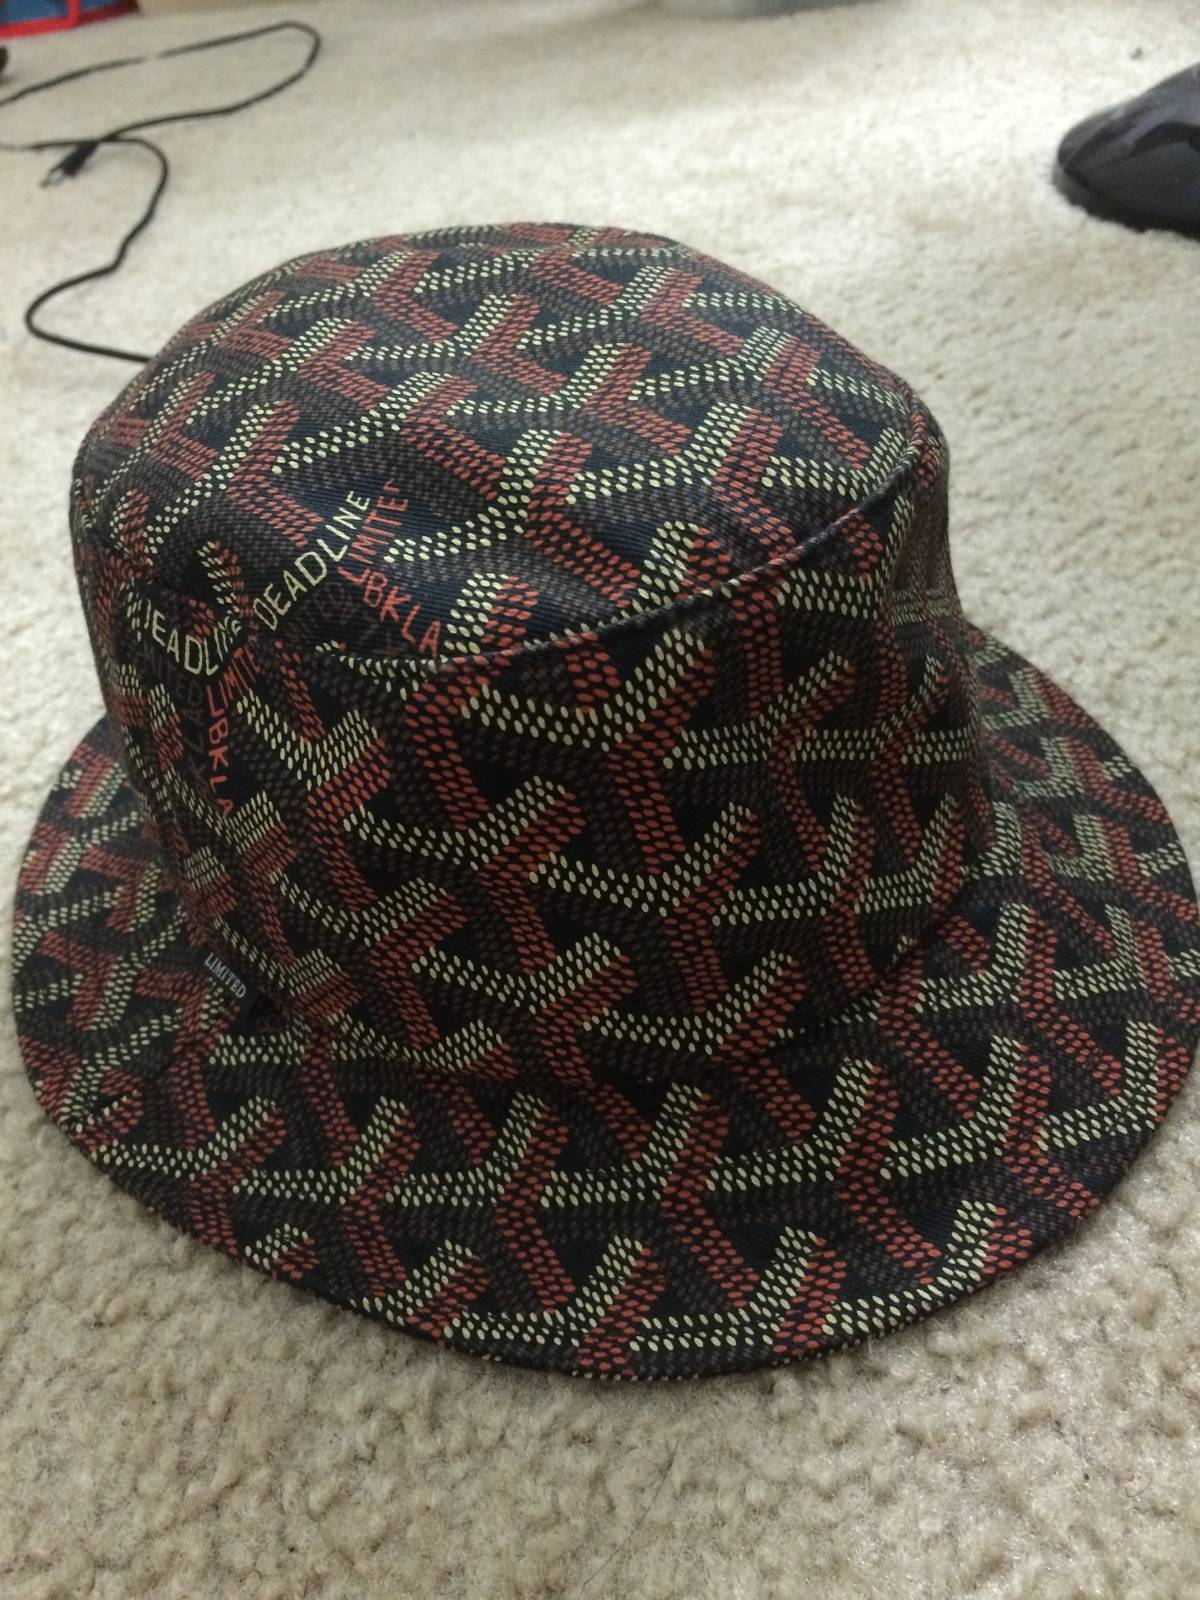 Deadline GoHard (Goyard) Bucket S M Size one size - Hats for Sale - Grailed ce55edd6a28